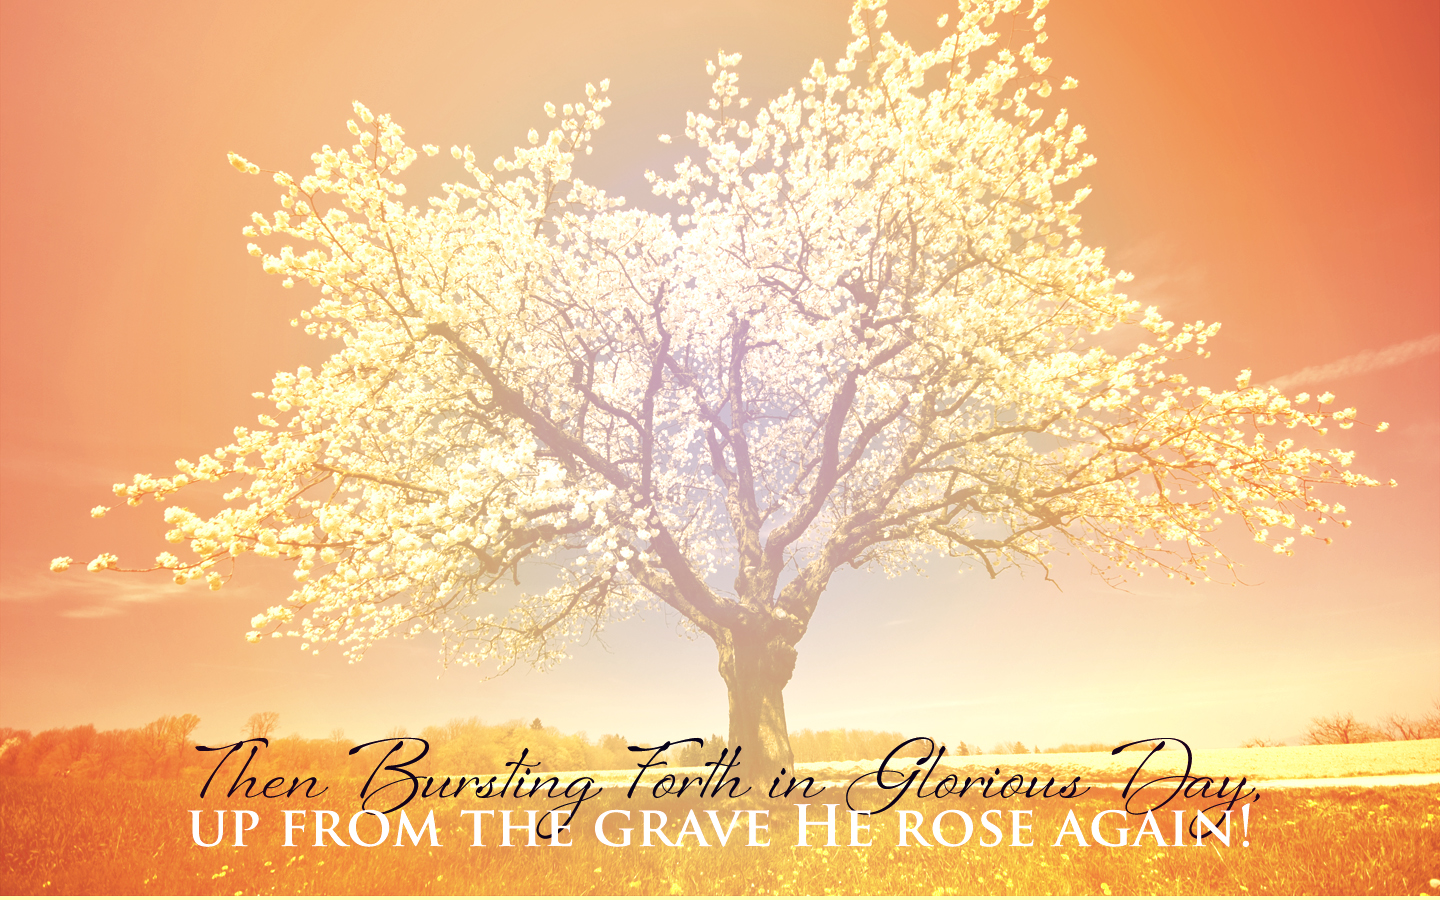 Free beautiful christian spring wallpaper wallpapersafari - Christian easter images free ...